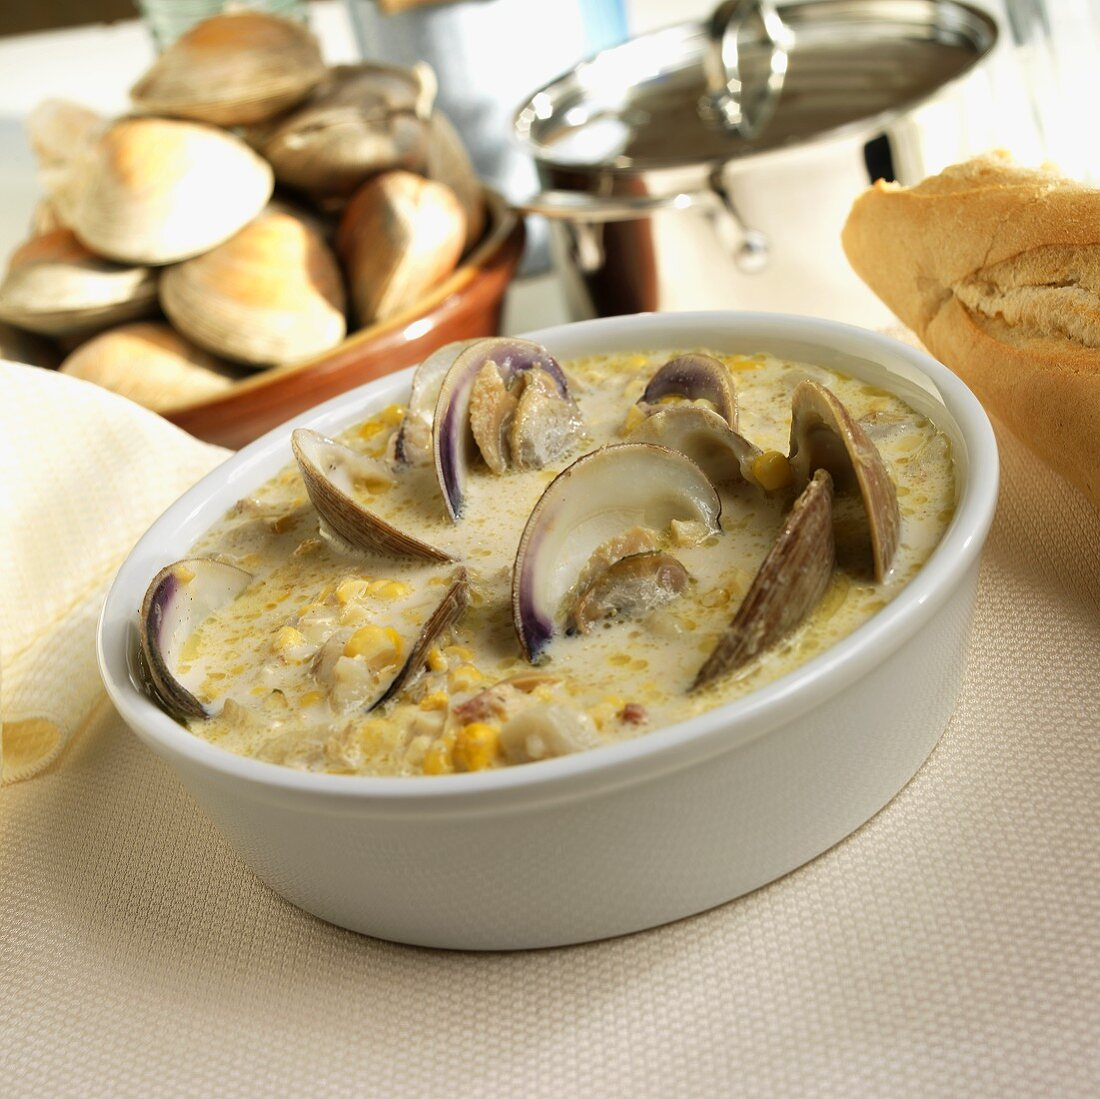 Bowl of Corn and Clam Chowder